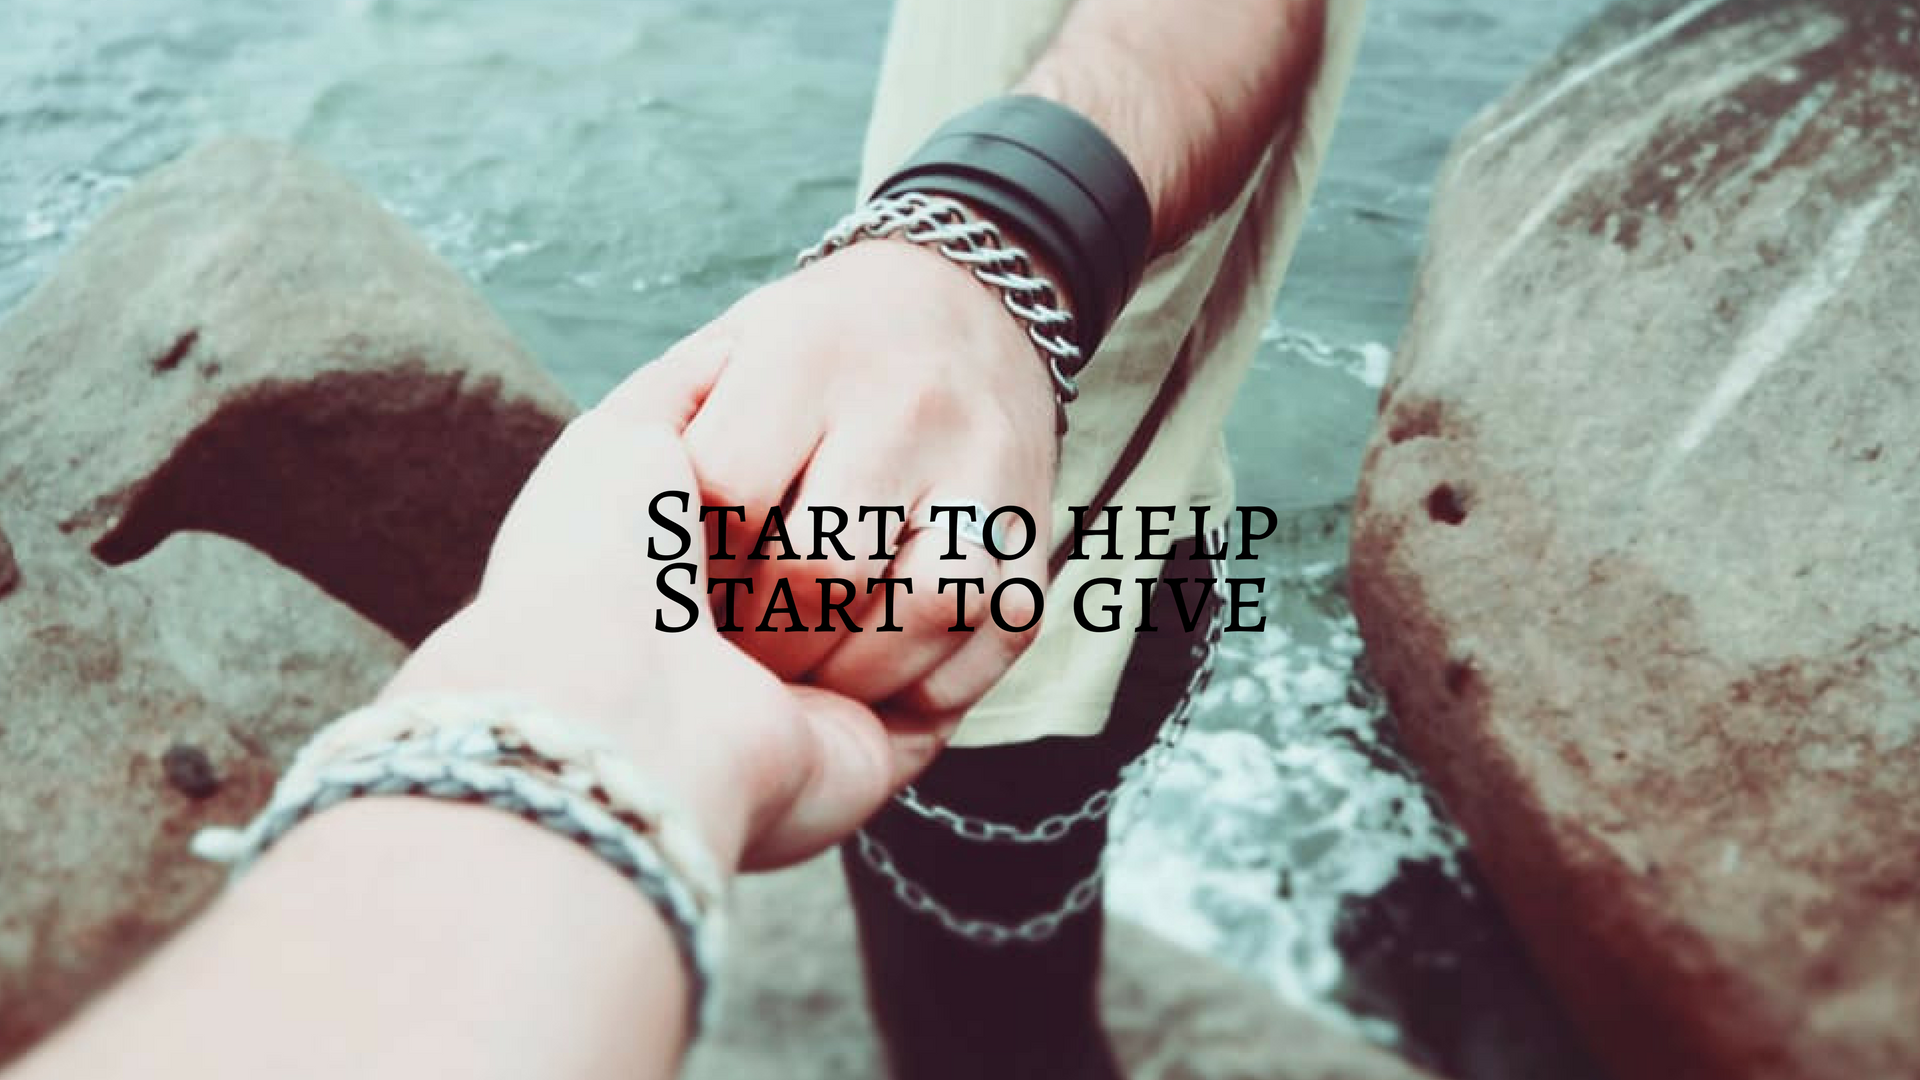 Start to helpStart to give